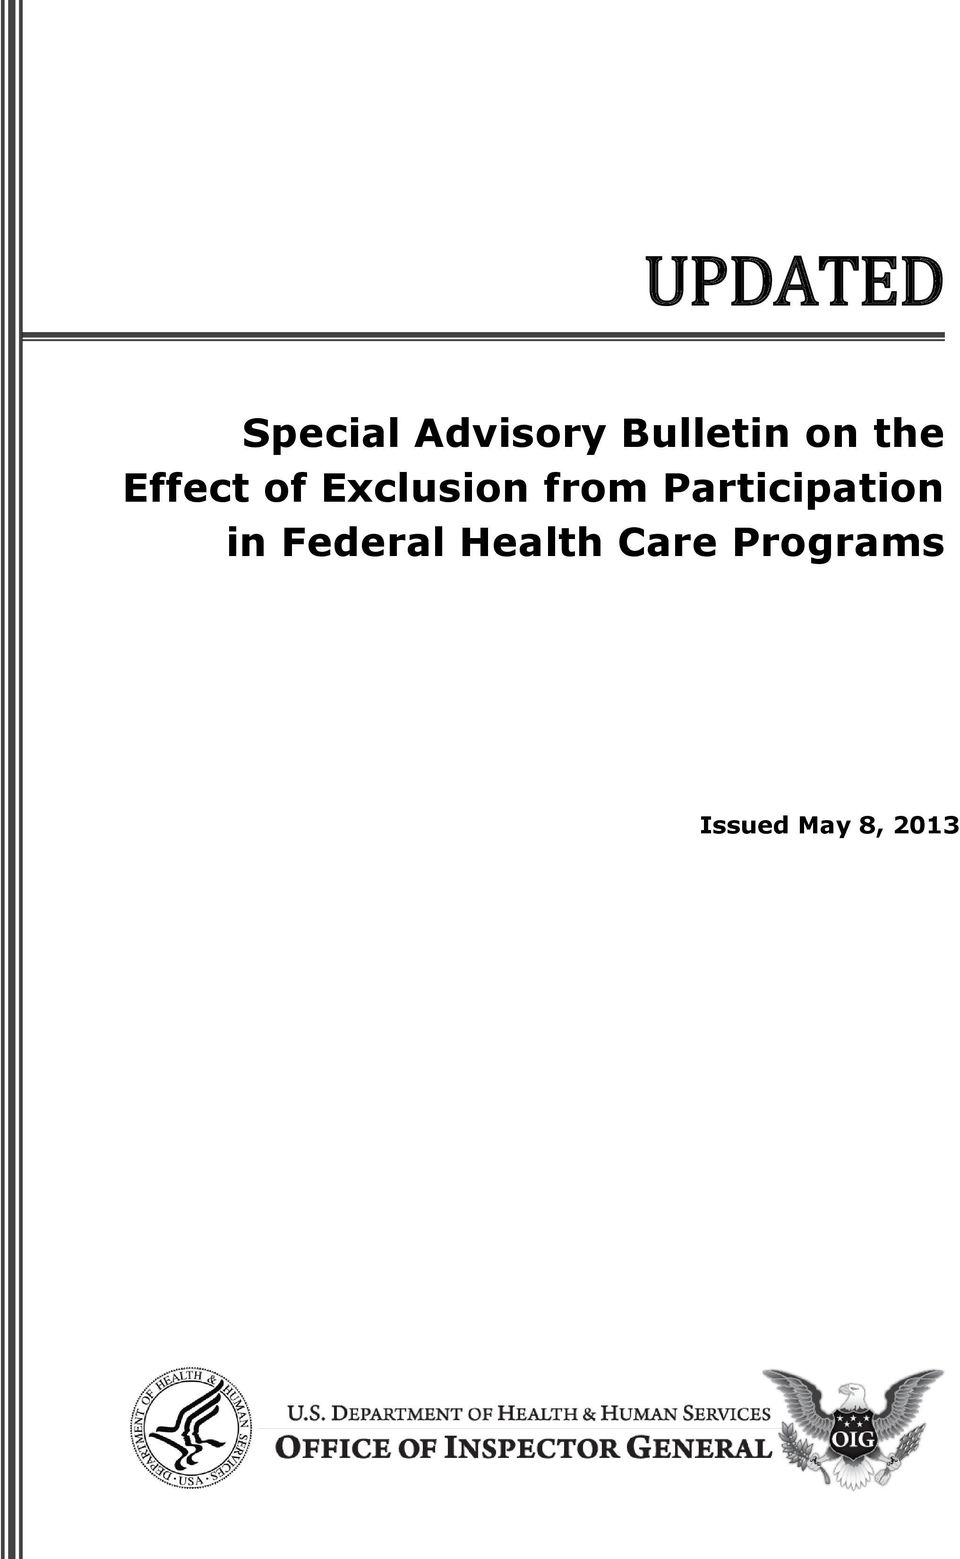 Exclusion from Participation in